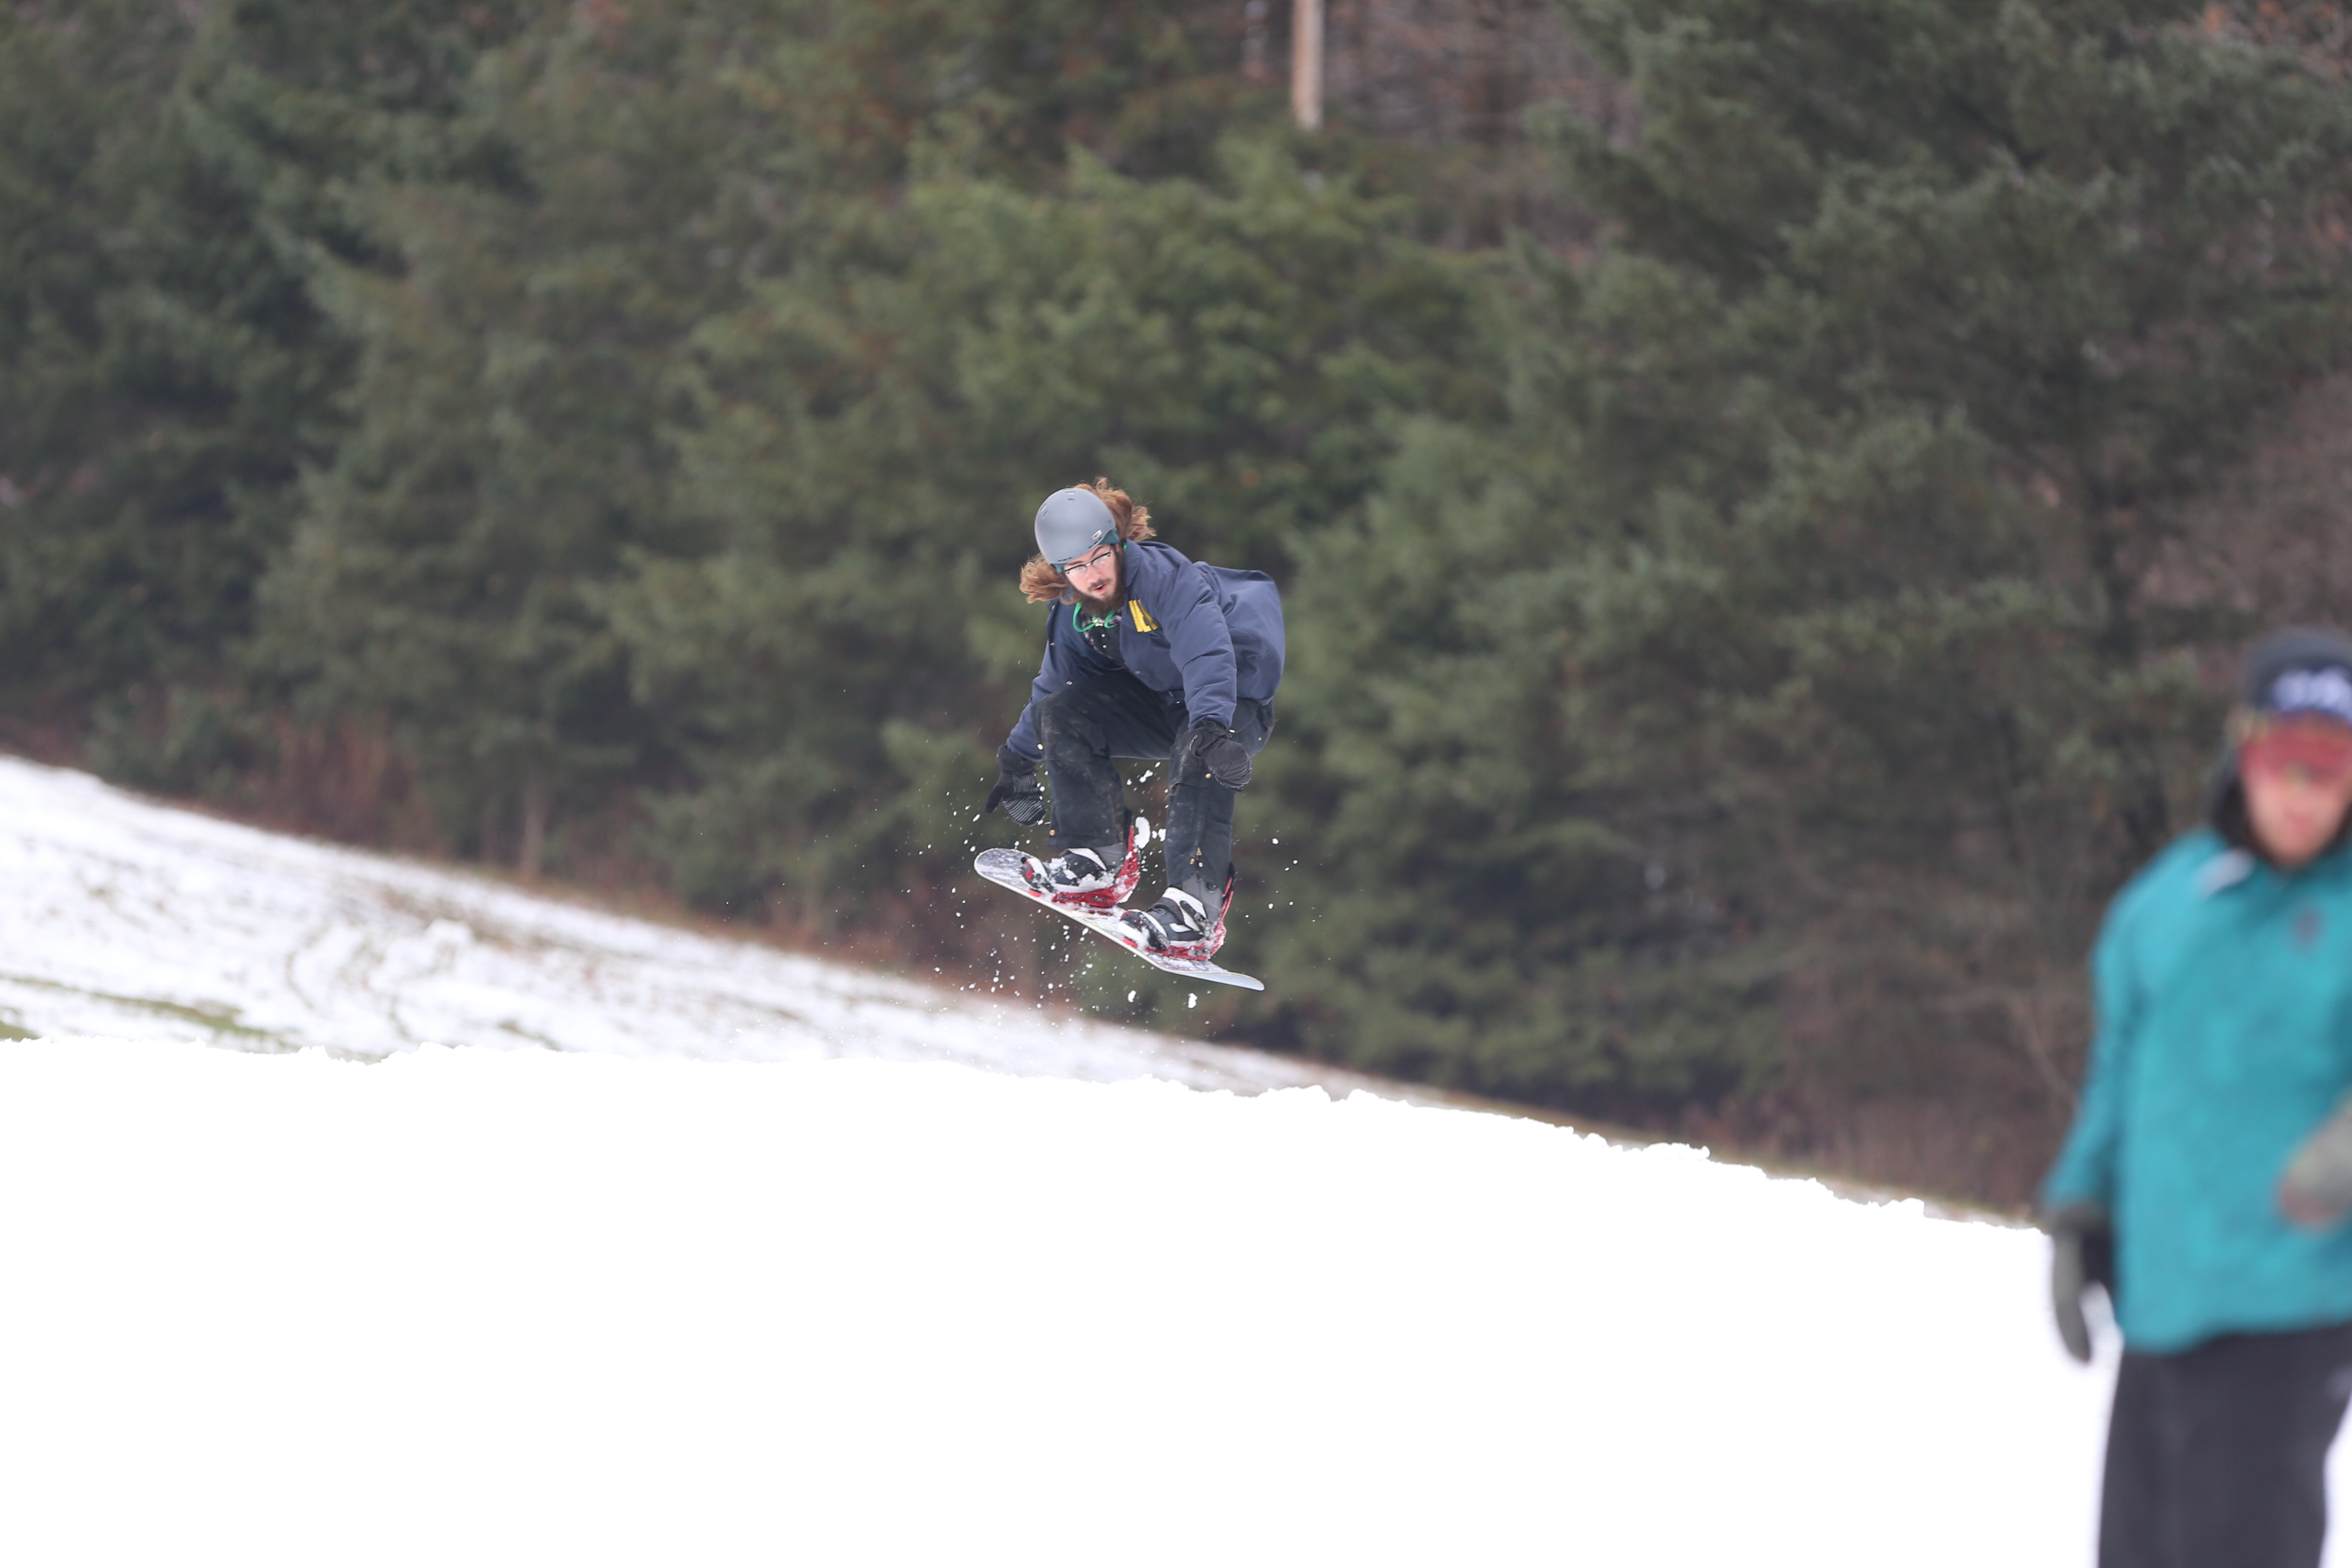 Snowboarder Steve Polanowski, of Lancaster hits a jump on Mardi Gras as snowboarders and skiers hit the Holiday Valley slopes on opening weekend in November. (John Hickey/Buffalo News)